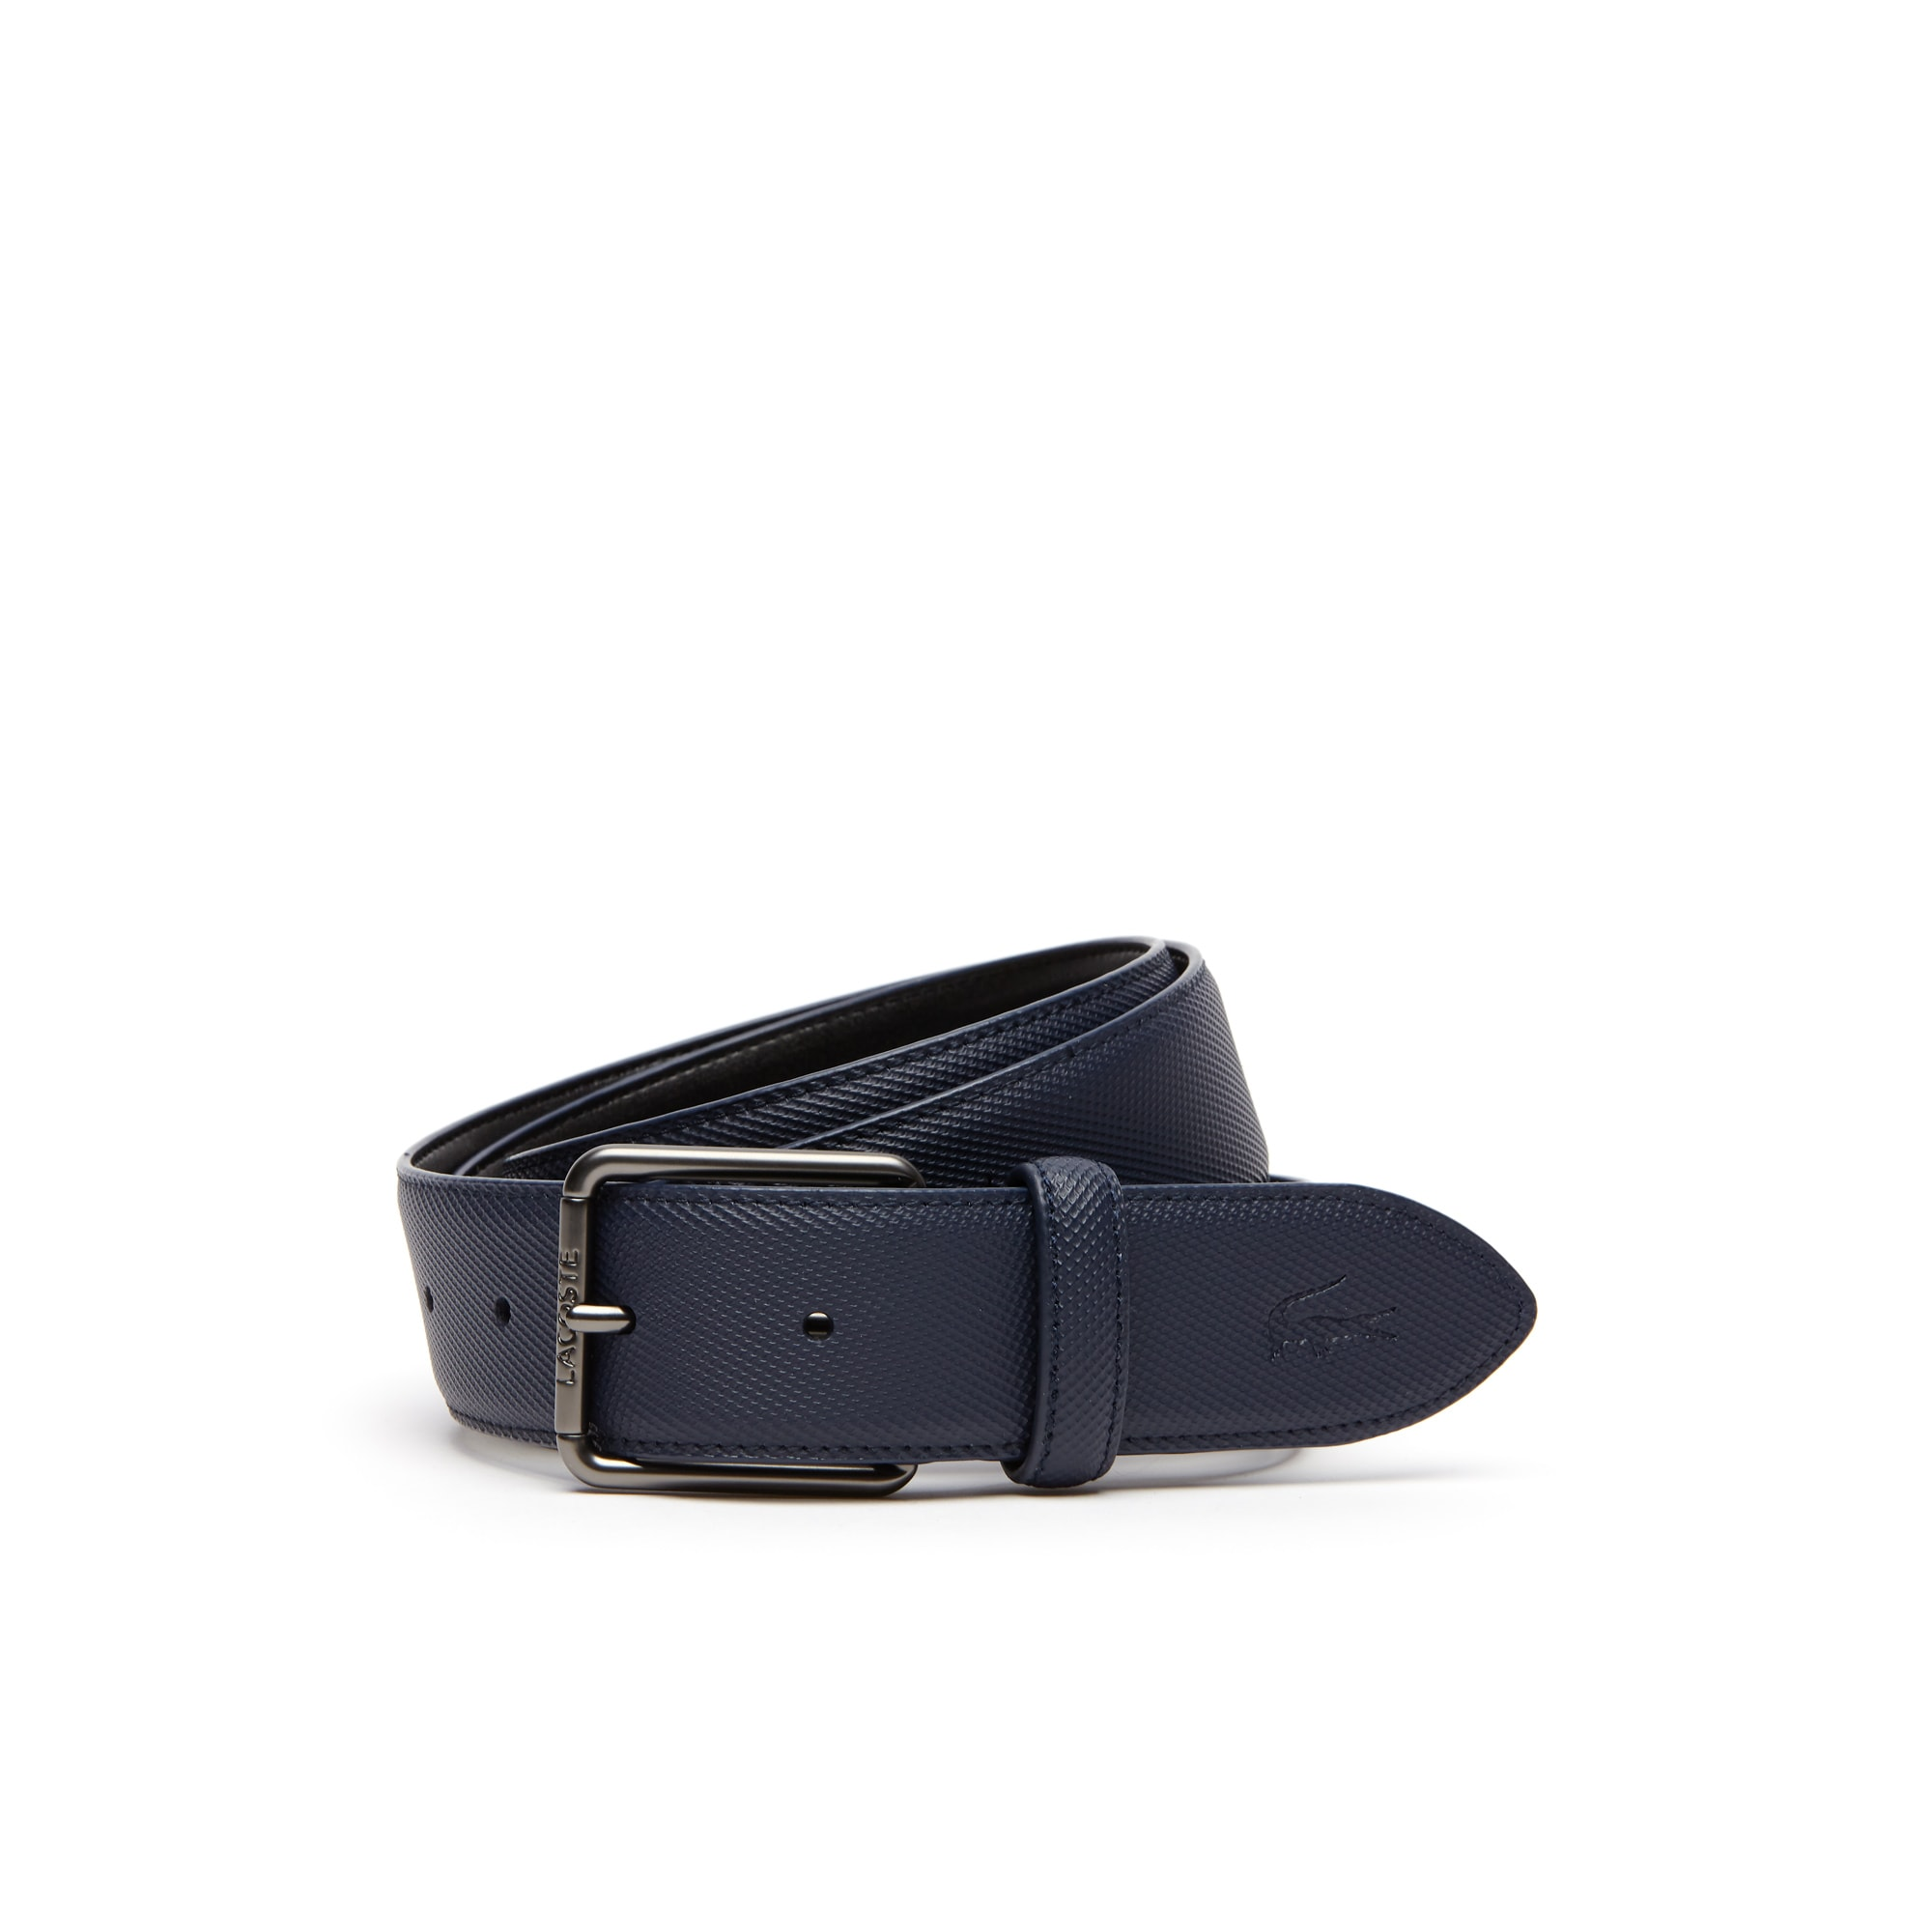 Men's Classic Lacoste Engraved Tongue Buckle Petit Piqué Belt